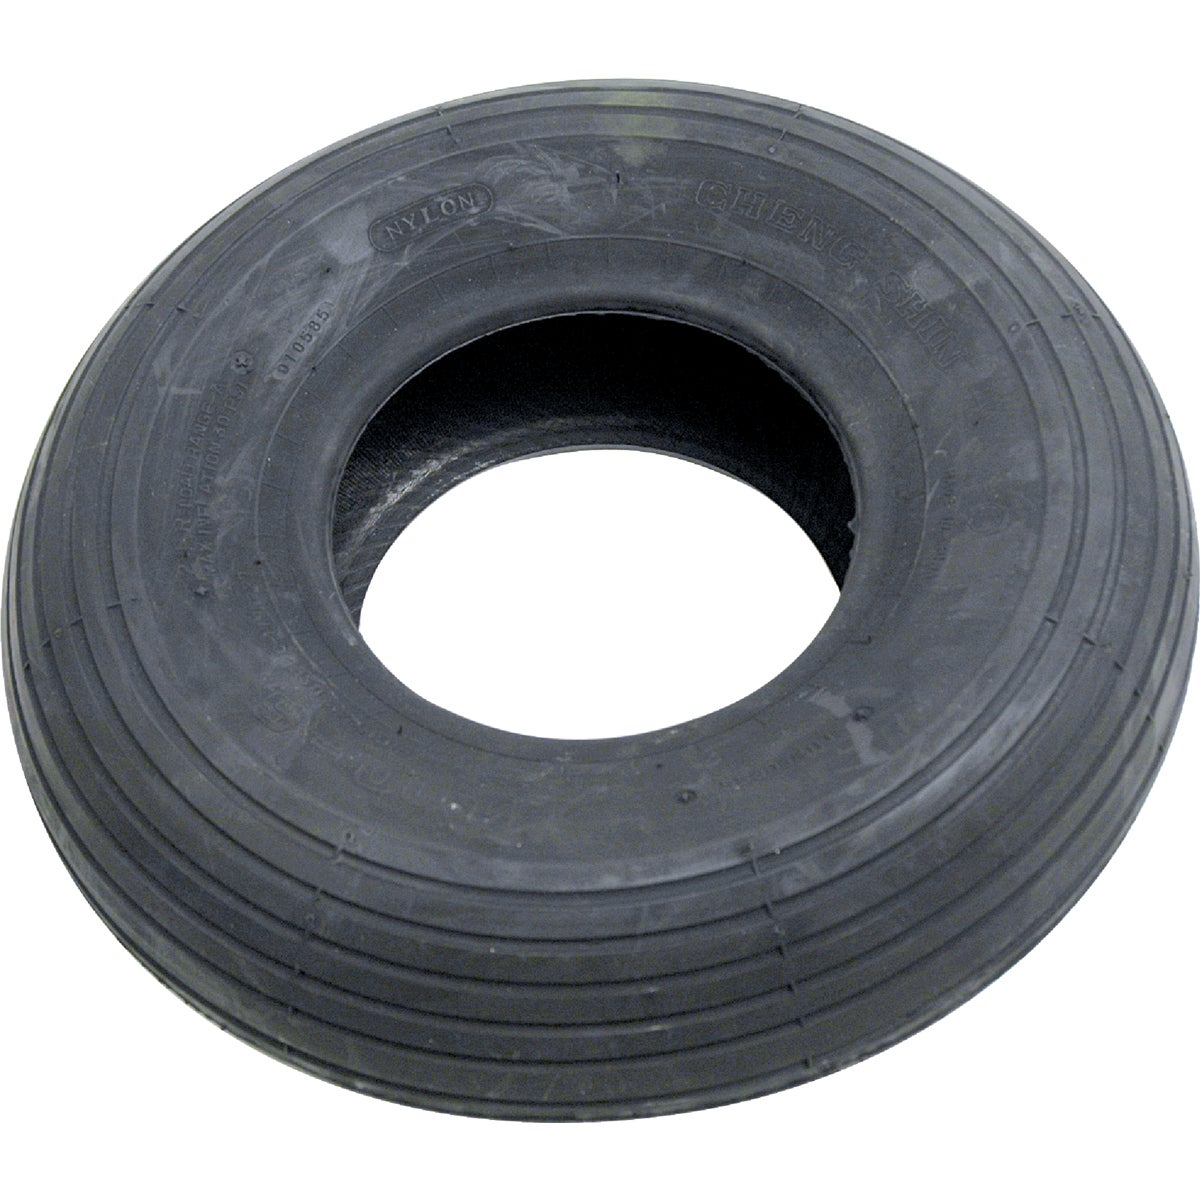 Arnold Corp. 400X6 REPL RIBBED TIRE TR-62